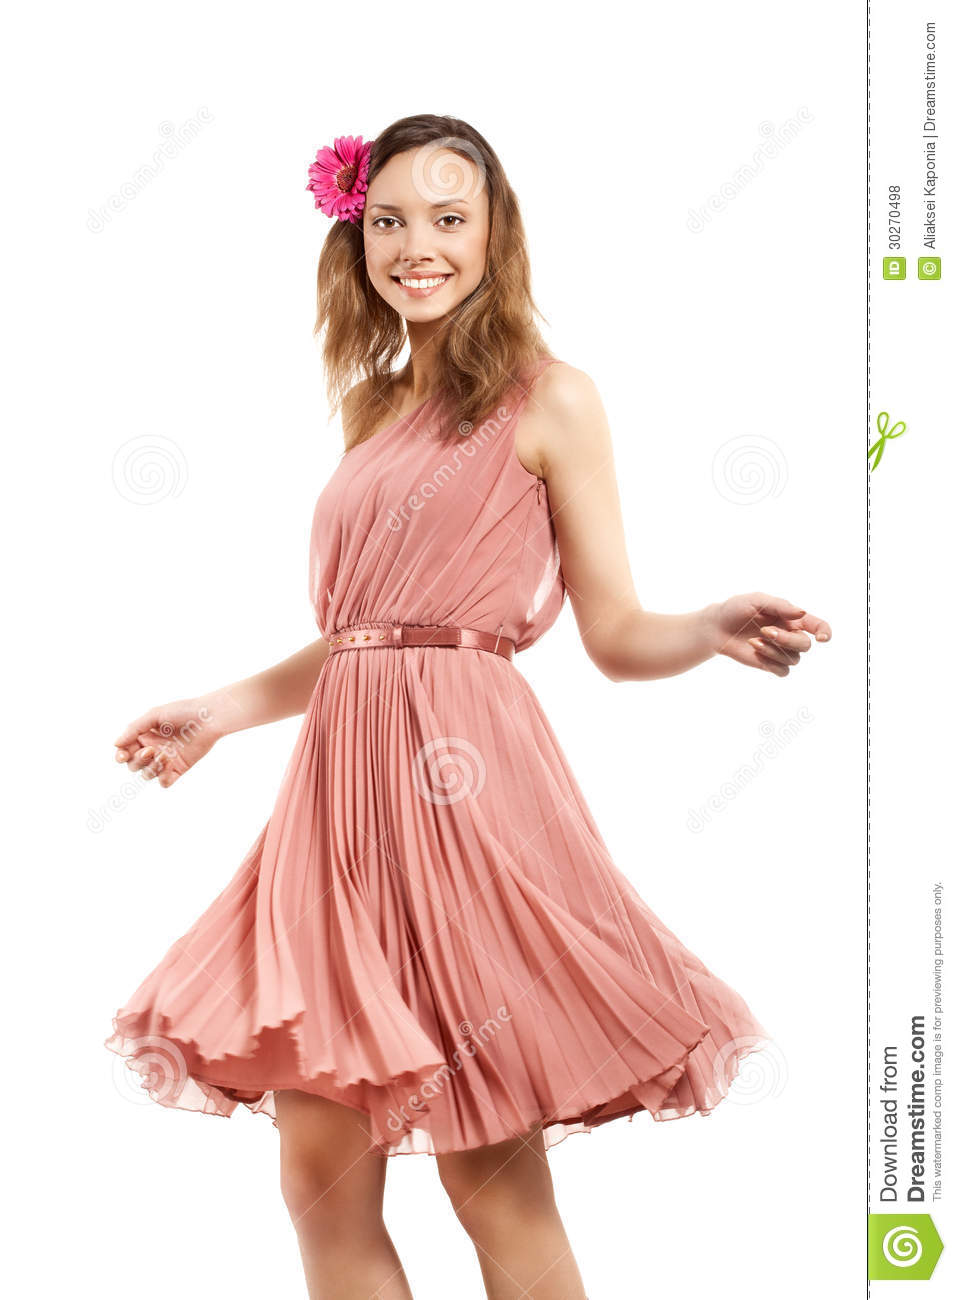 young lady in pink dress royalty free stock photos image